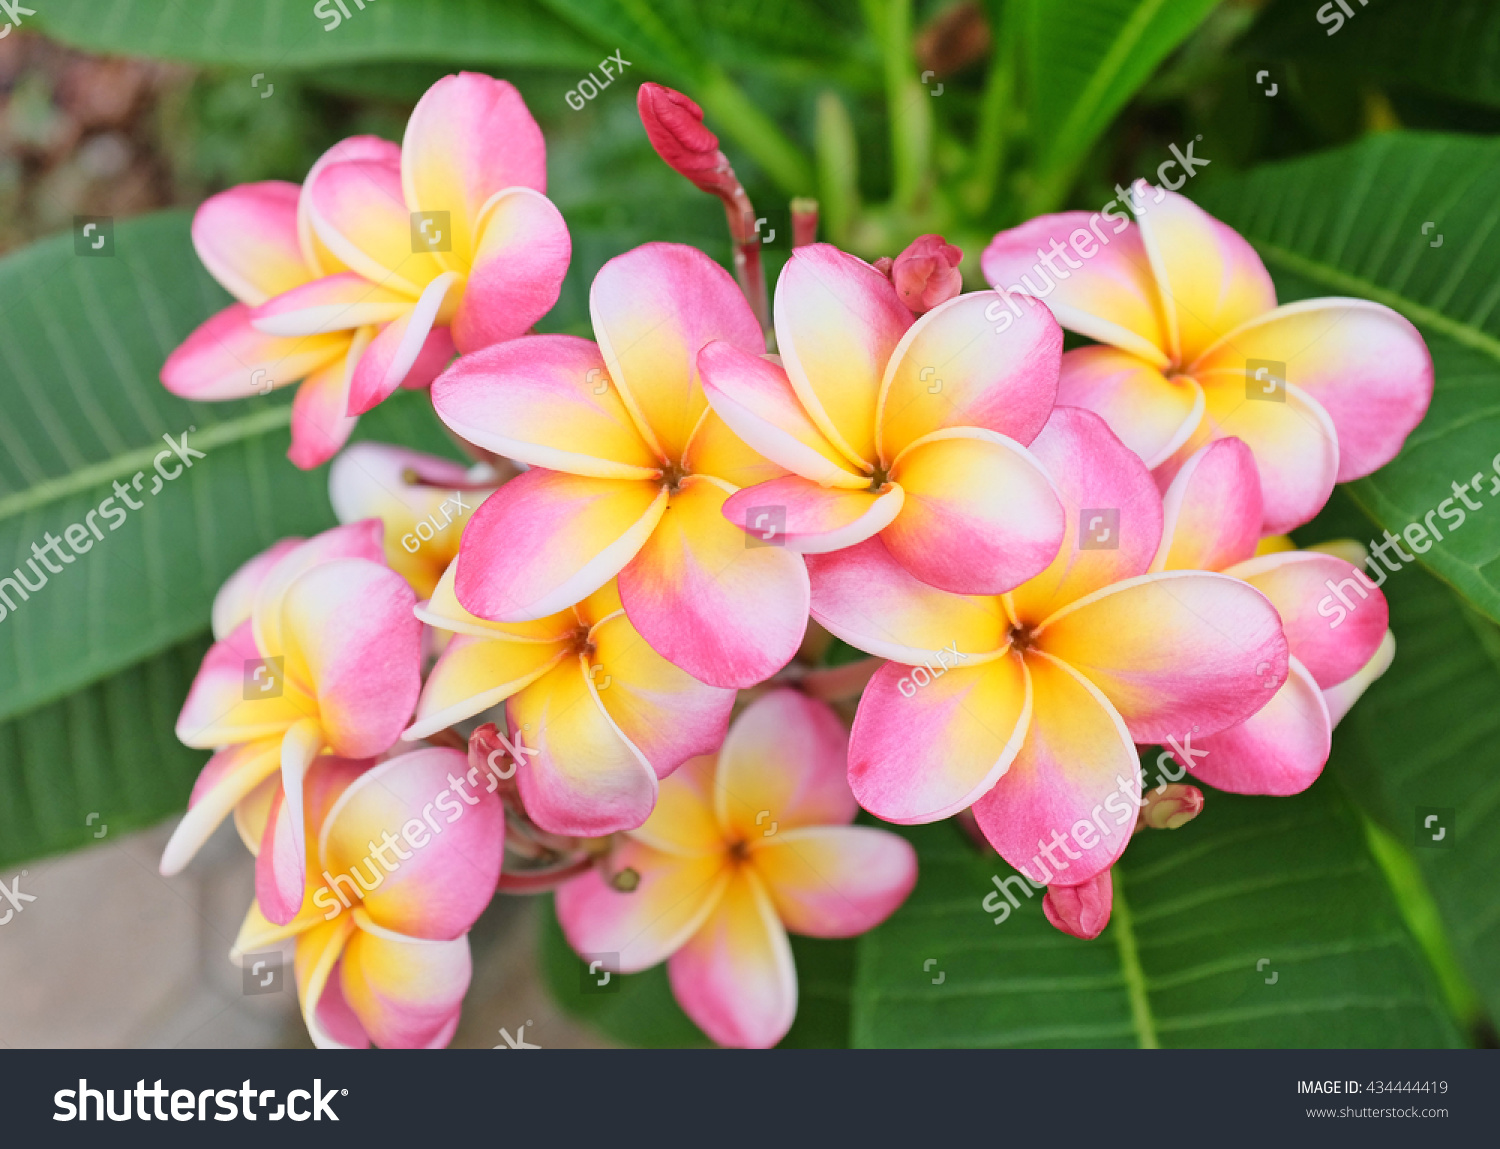 Plumeria flower pink white frangipani tropical stock photo plumeria flower pink and white frangipani tropical flower plumeria flower blooming on tree spa dhlflorist Gallery